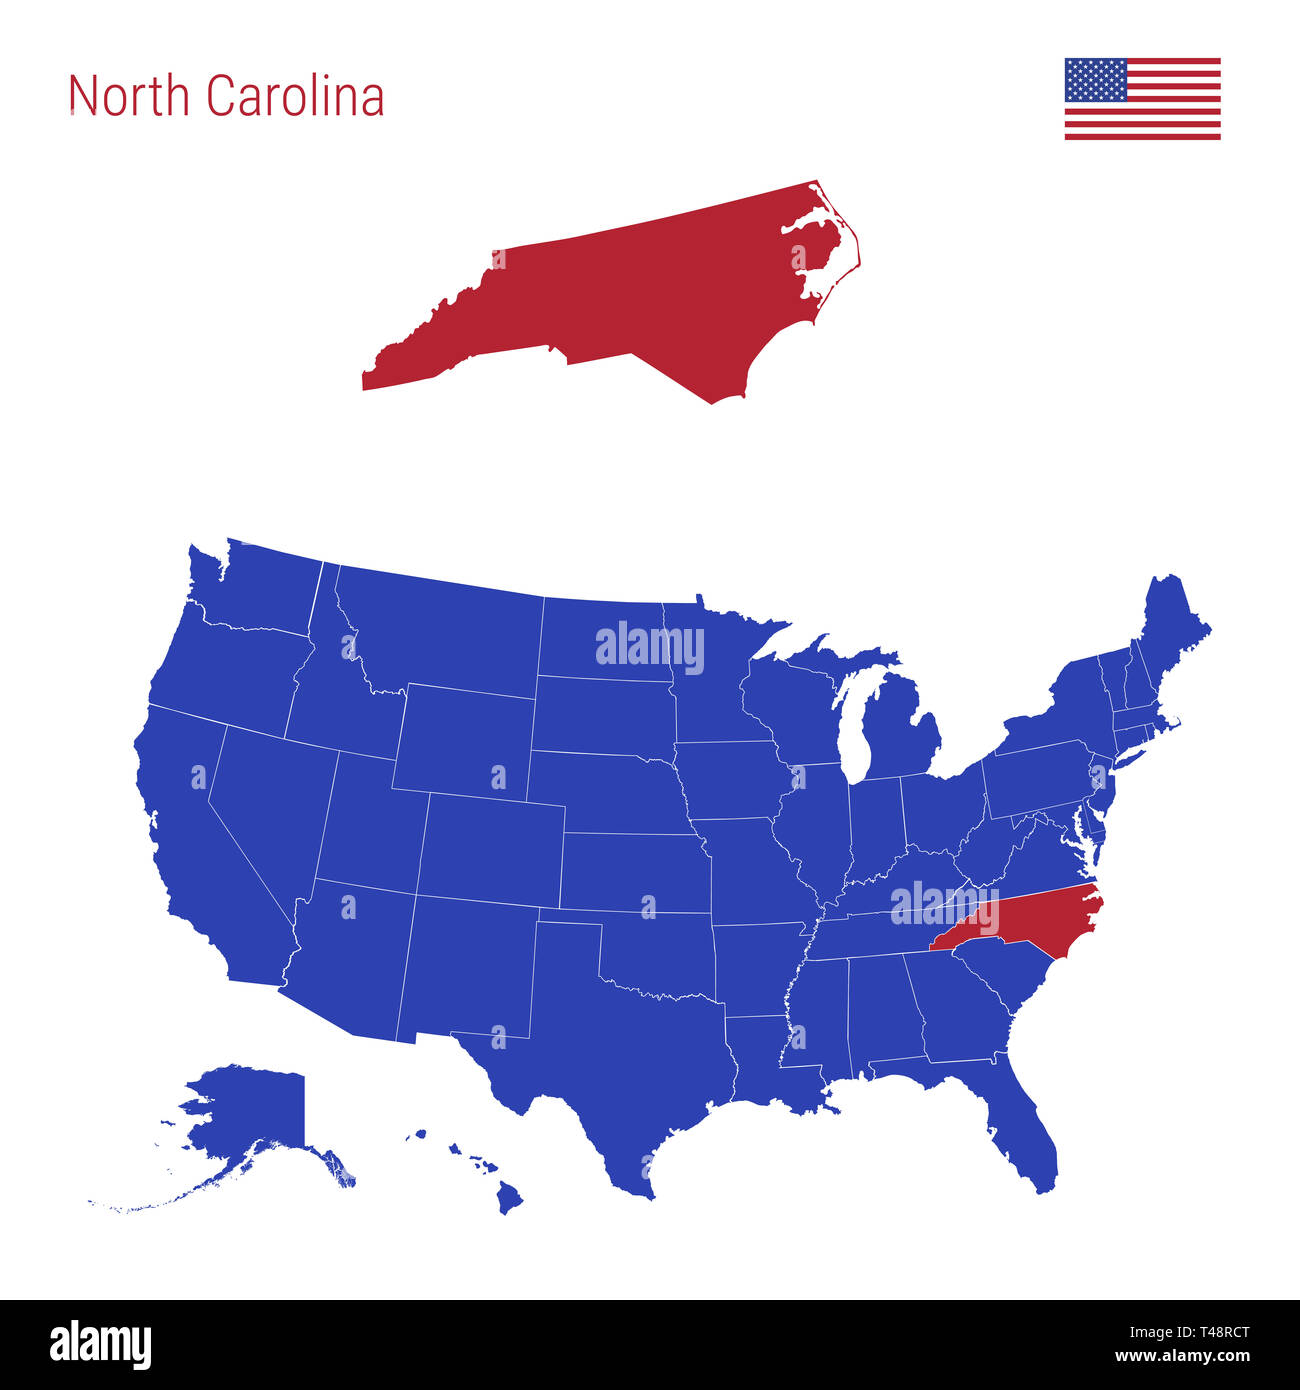 The State of North Carolina is Highlighted in Red. Blue Map ... on north carolina back then, beech mountain nc map, denver north carolina map, bern north carolina map, north carolina's map, north carolina mountains, state of n carolina map, city of north carolina map, north carolina casinos locations, north carolina home map, north carolina on globe, hotel charlotte north carolina map, charleston south carolina on us map, north carolina in us, north carolina highway map, north carolina map with cities only, north dakota, small towns north carolina map, alabama river us map, north carolina on a map,